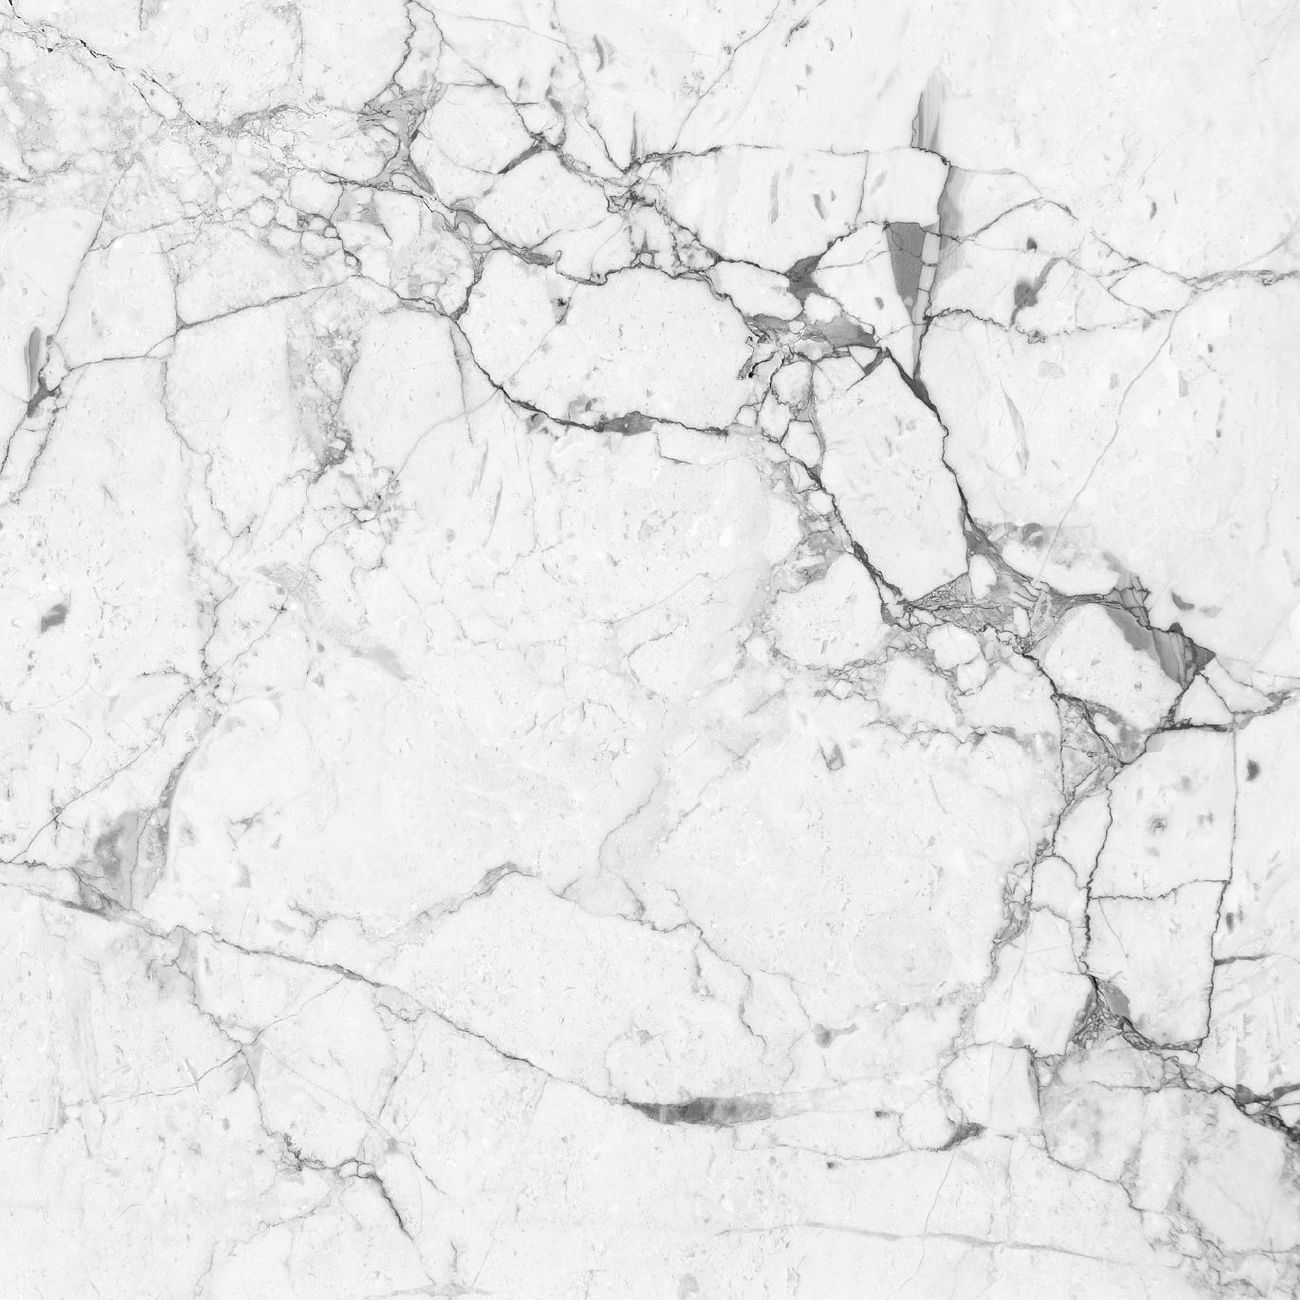 Mármore Branco Marble White Texture Marble Texture Marble Background